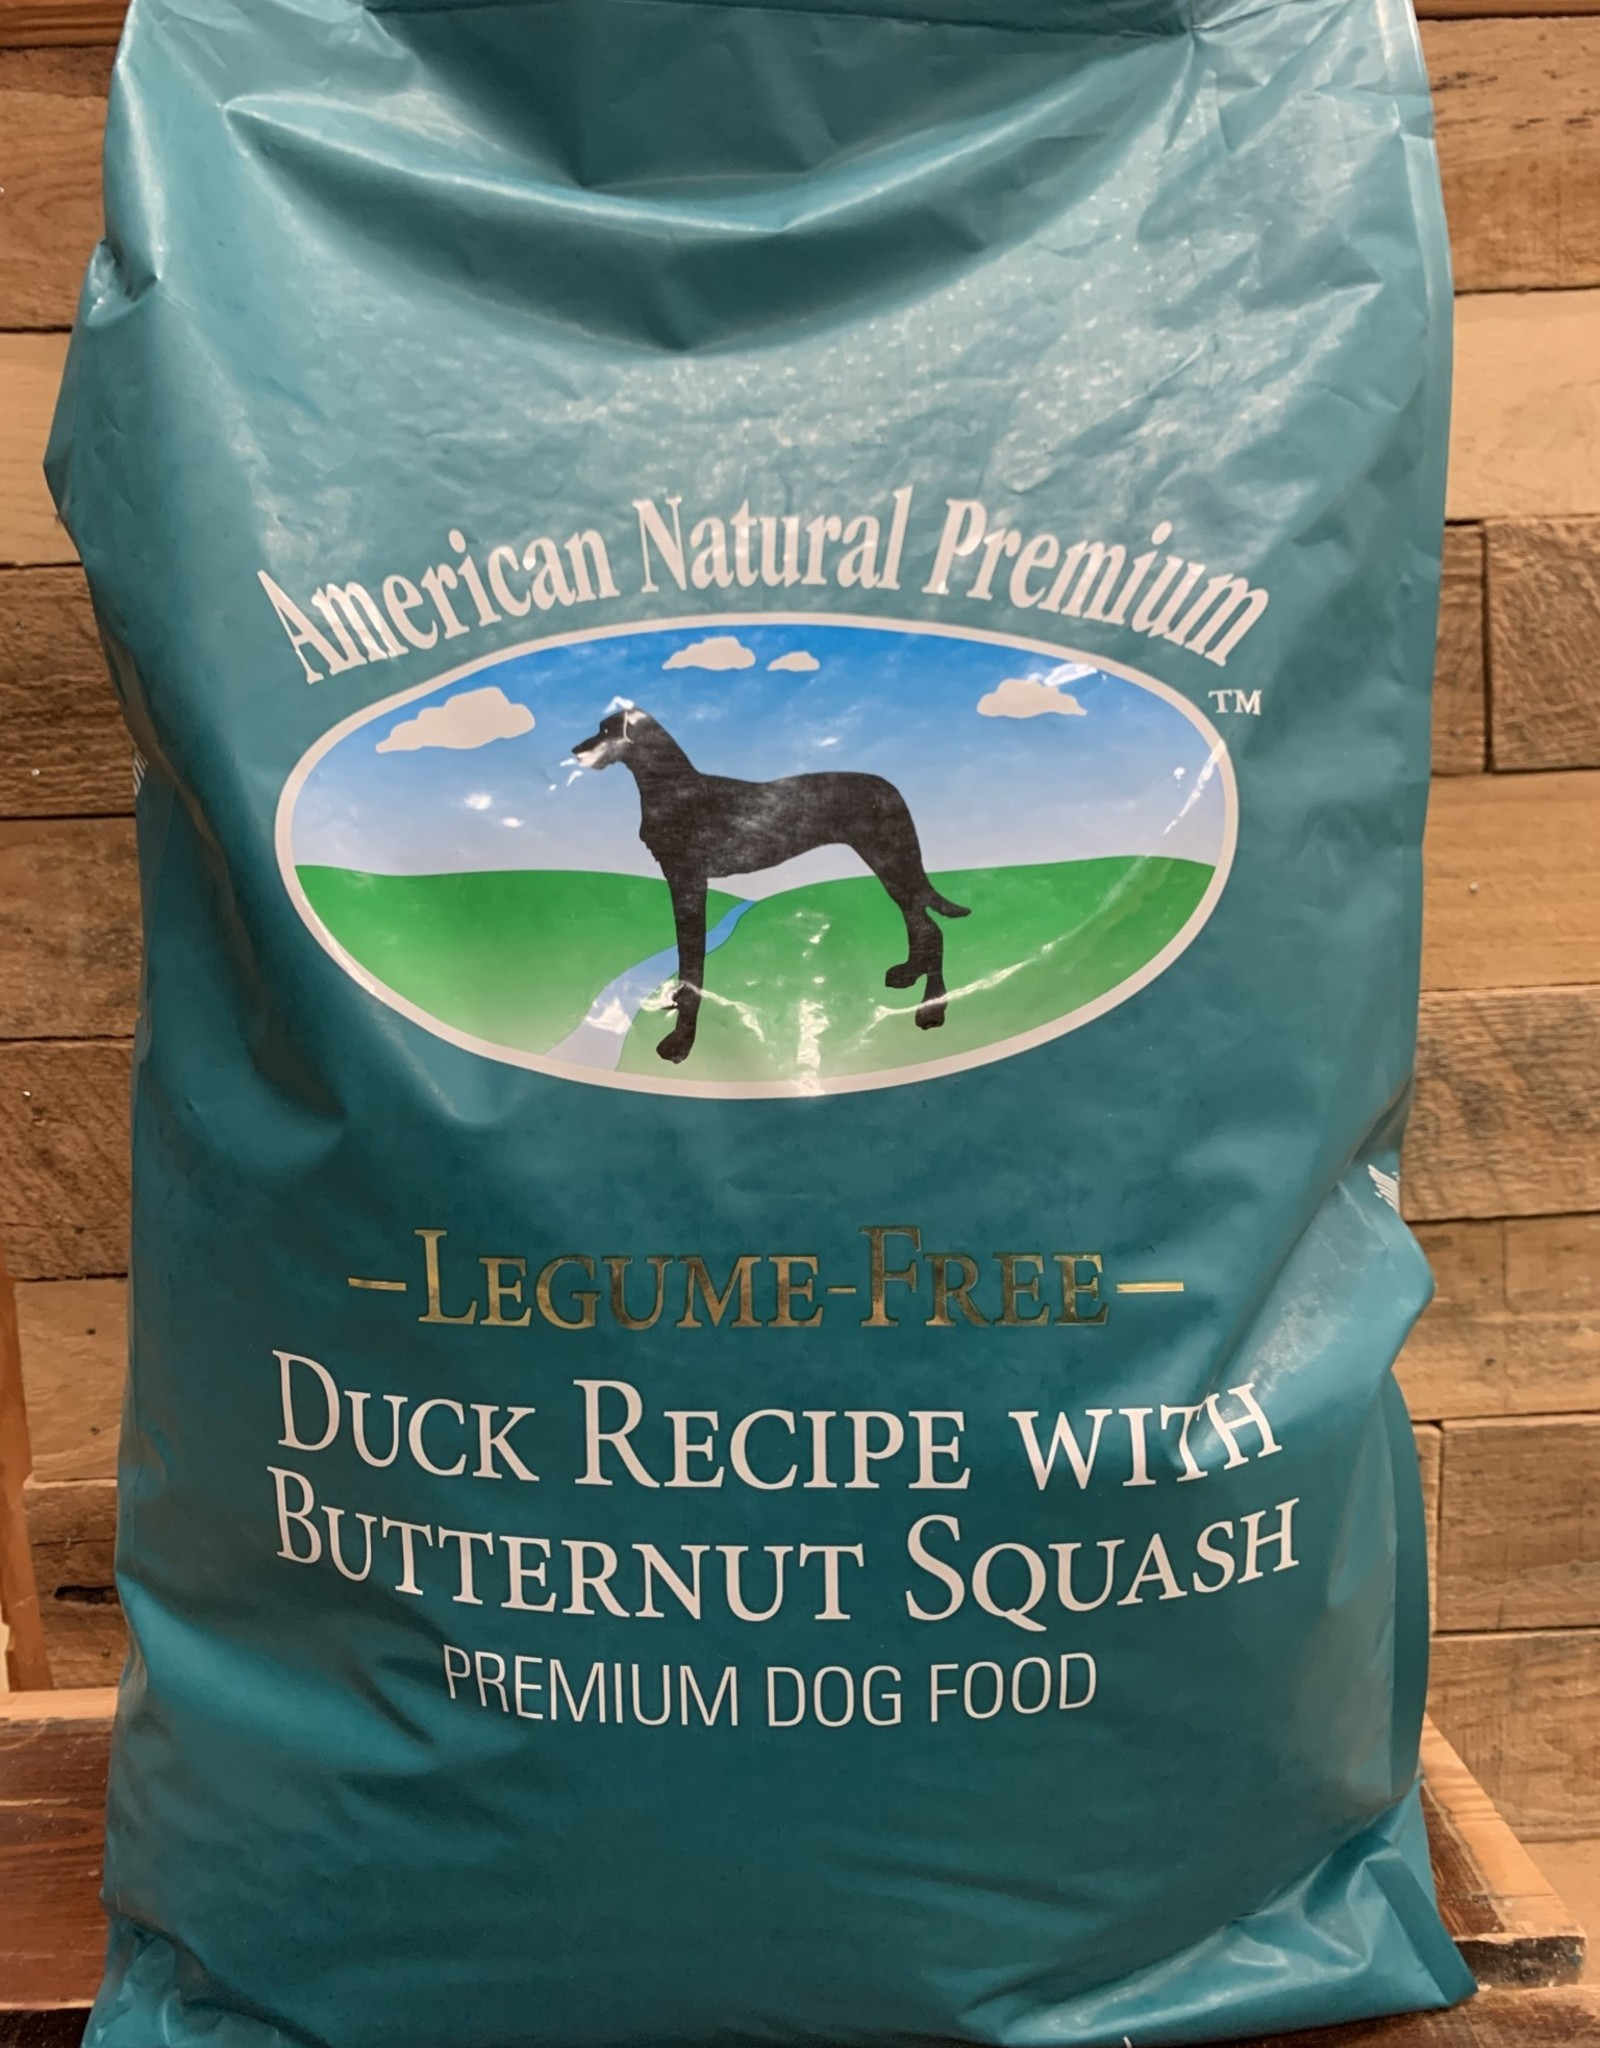 American Natural Premium American Natural Premium Duck with Squash - 3 sizes